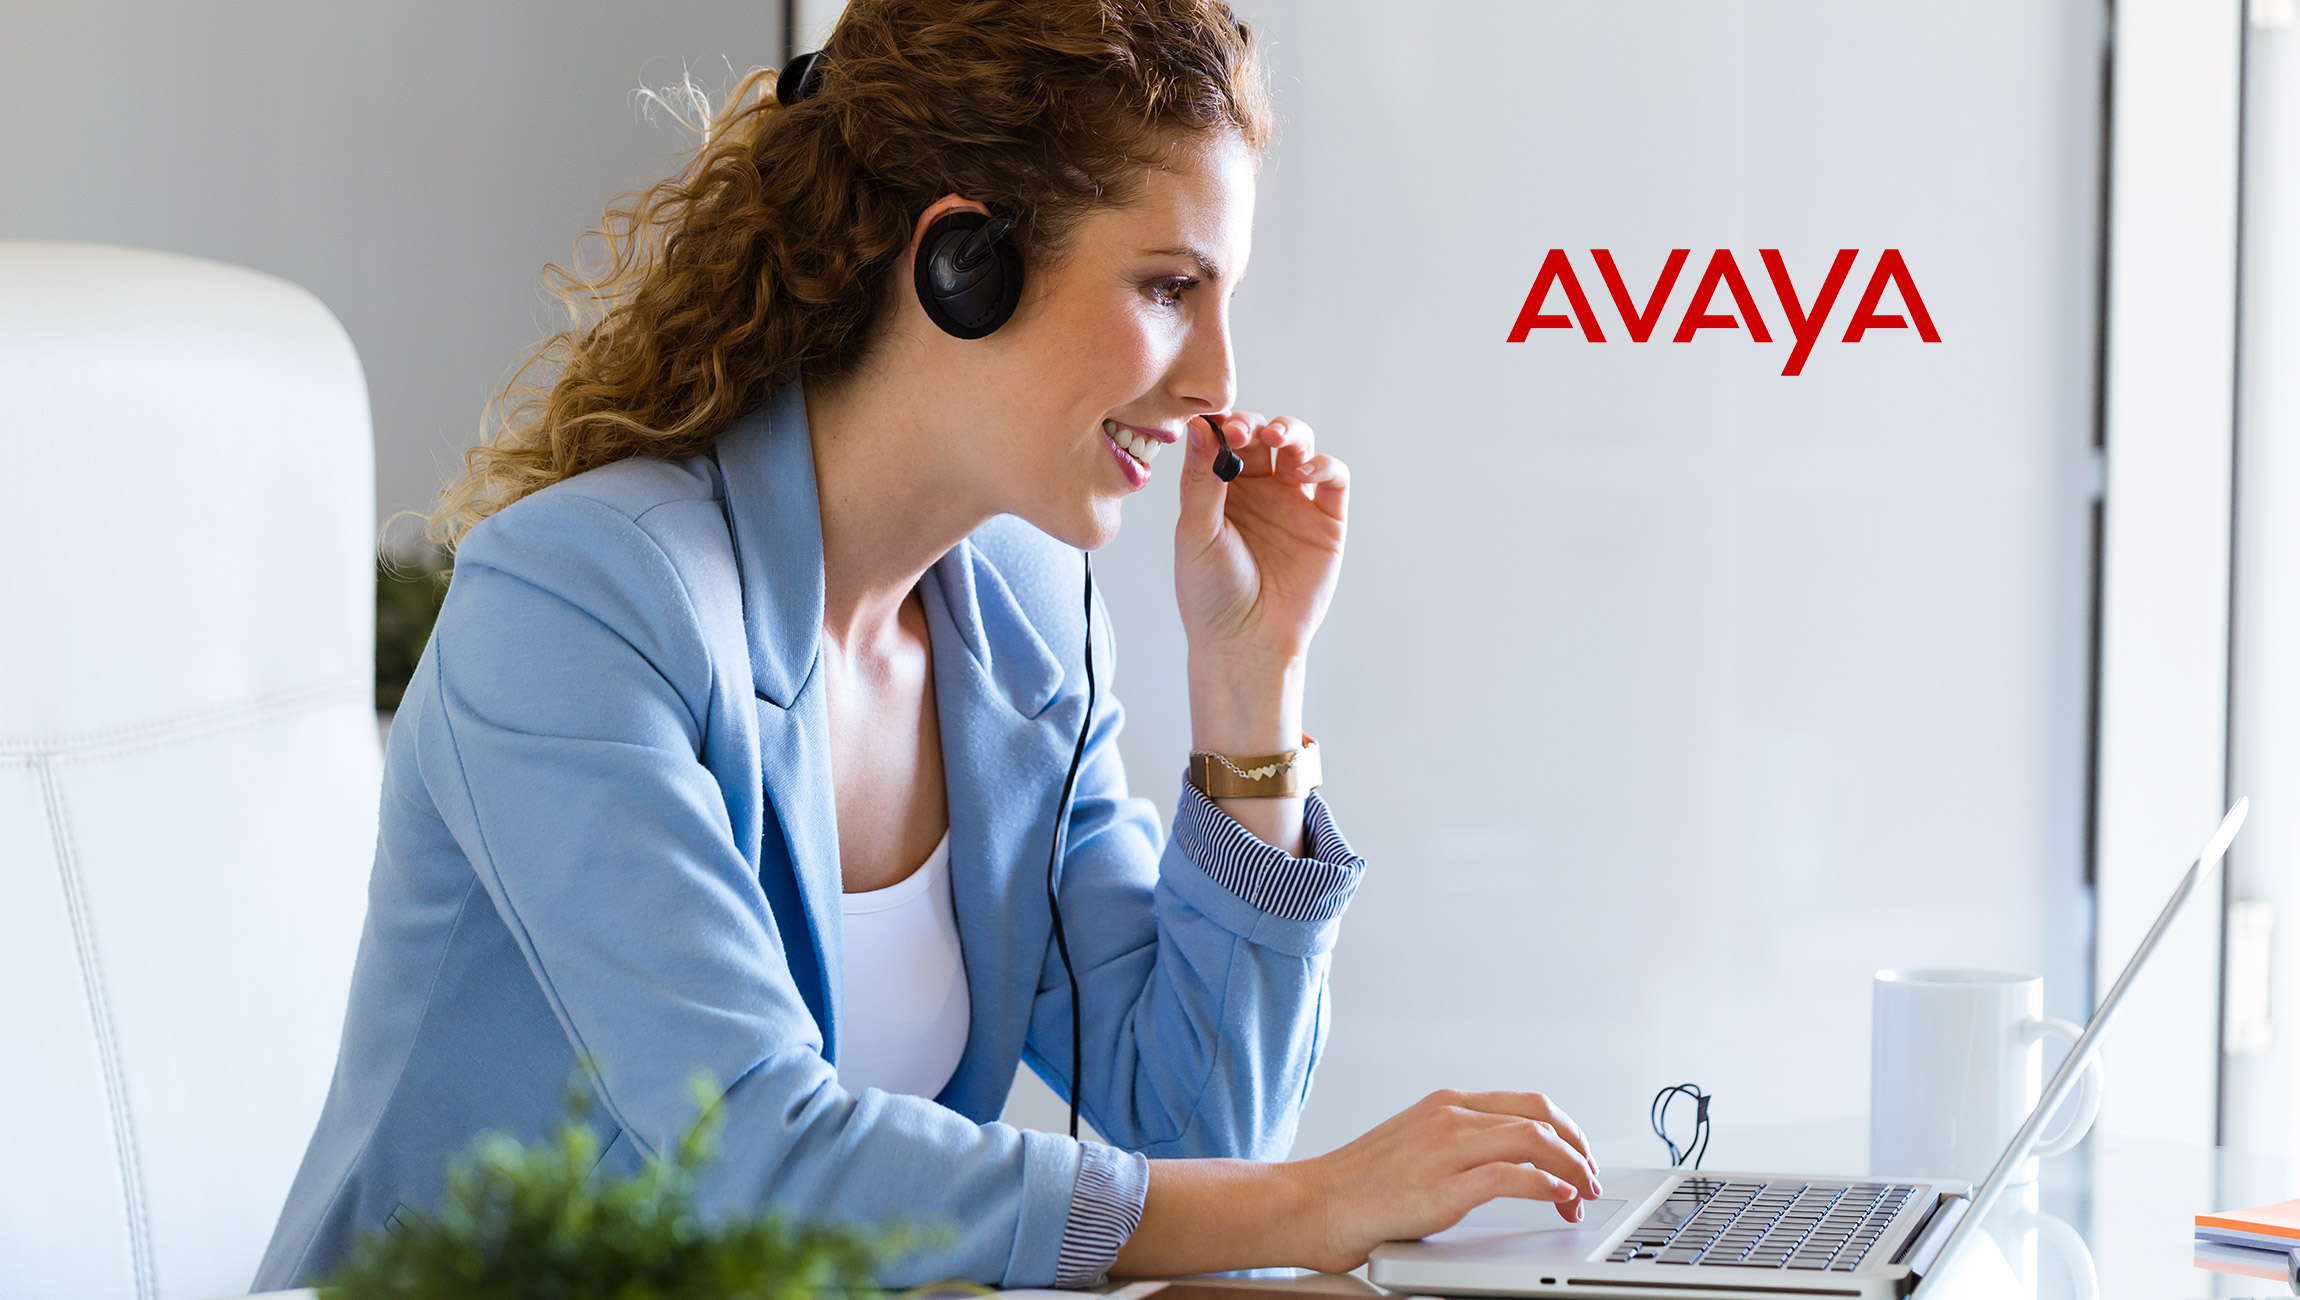 Avaya Acclaimed by Frost & Sullivan for Seizing Growth Opportunities With its Robust Portfolio of Intelligent Contact Center Solutions